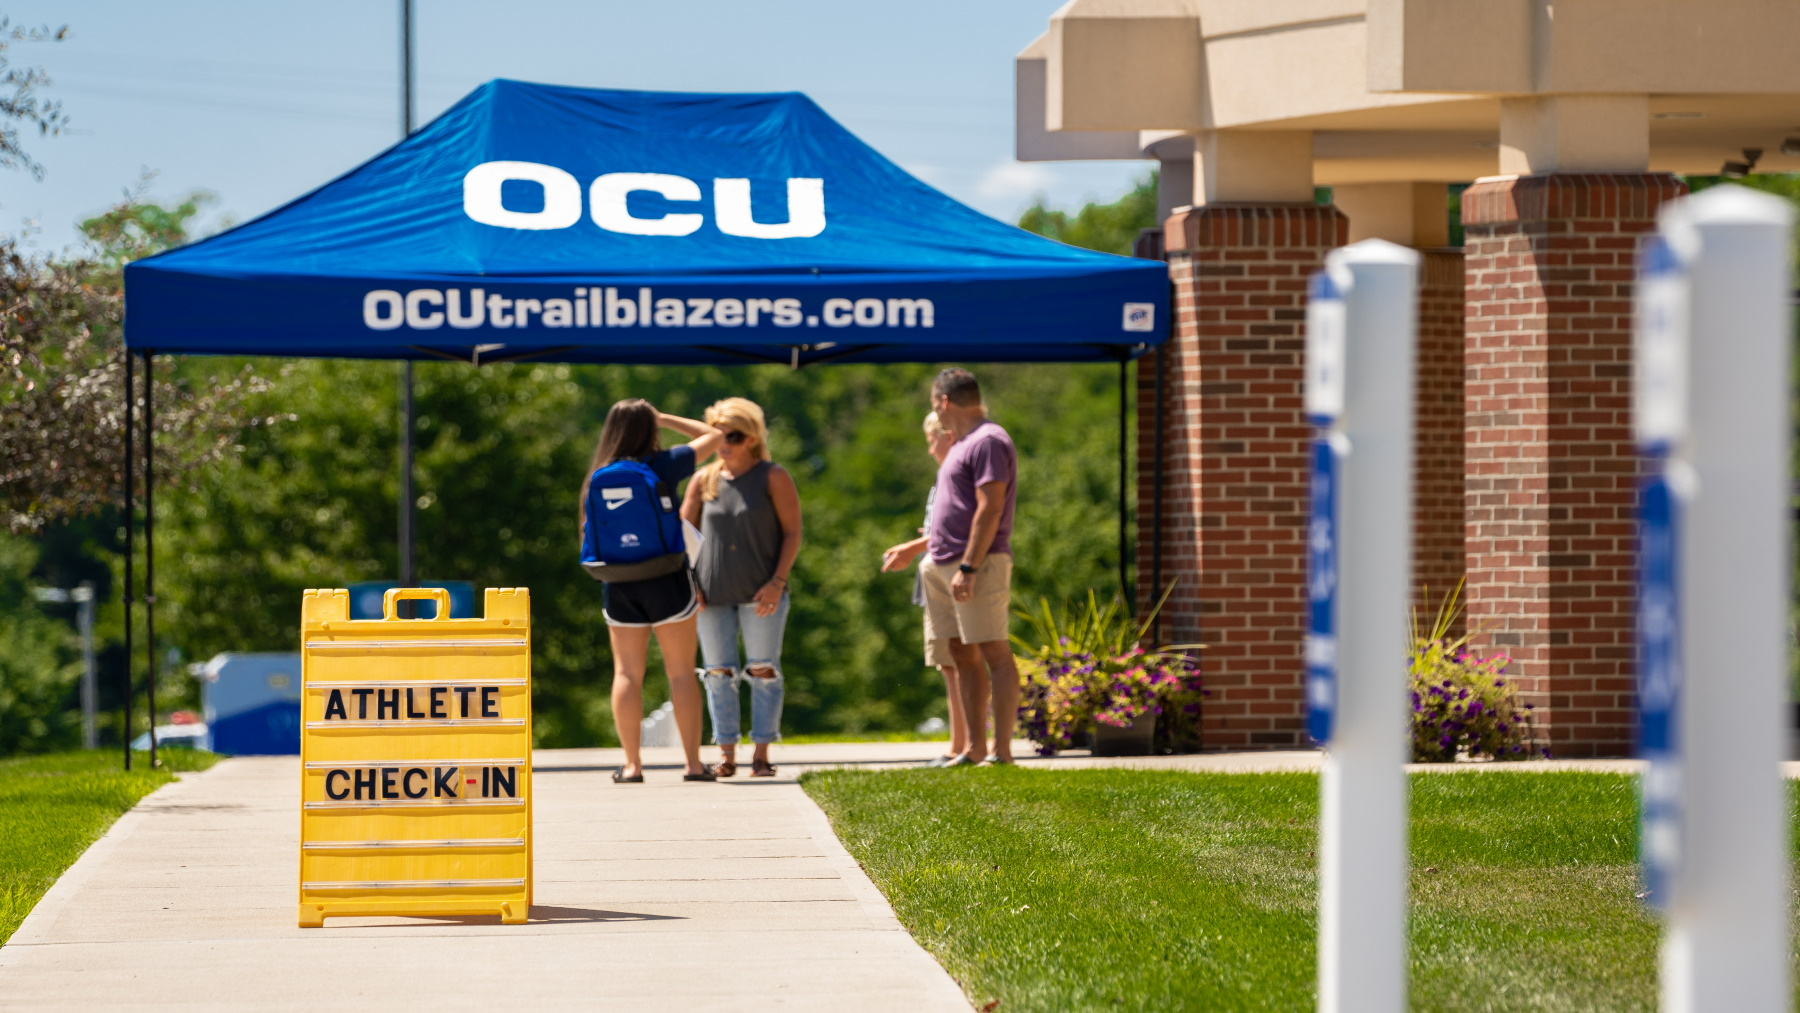 Fall Athlete Move In Set For Saturday, August 8th